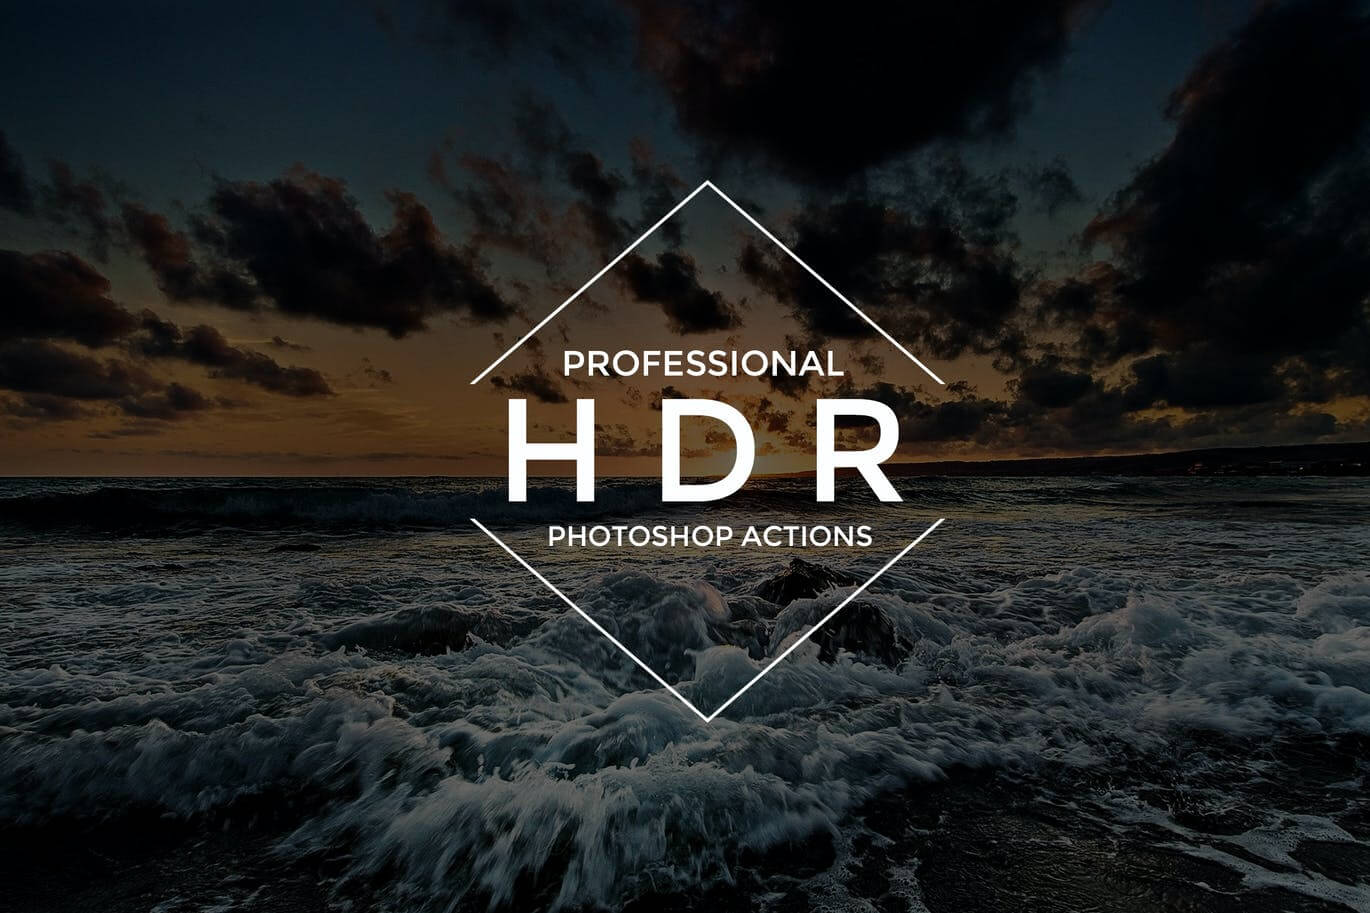 HDR Photoshop Actions1